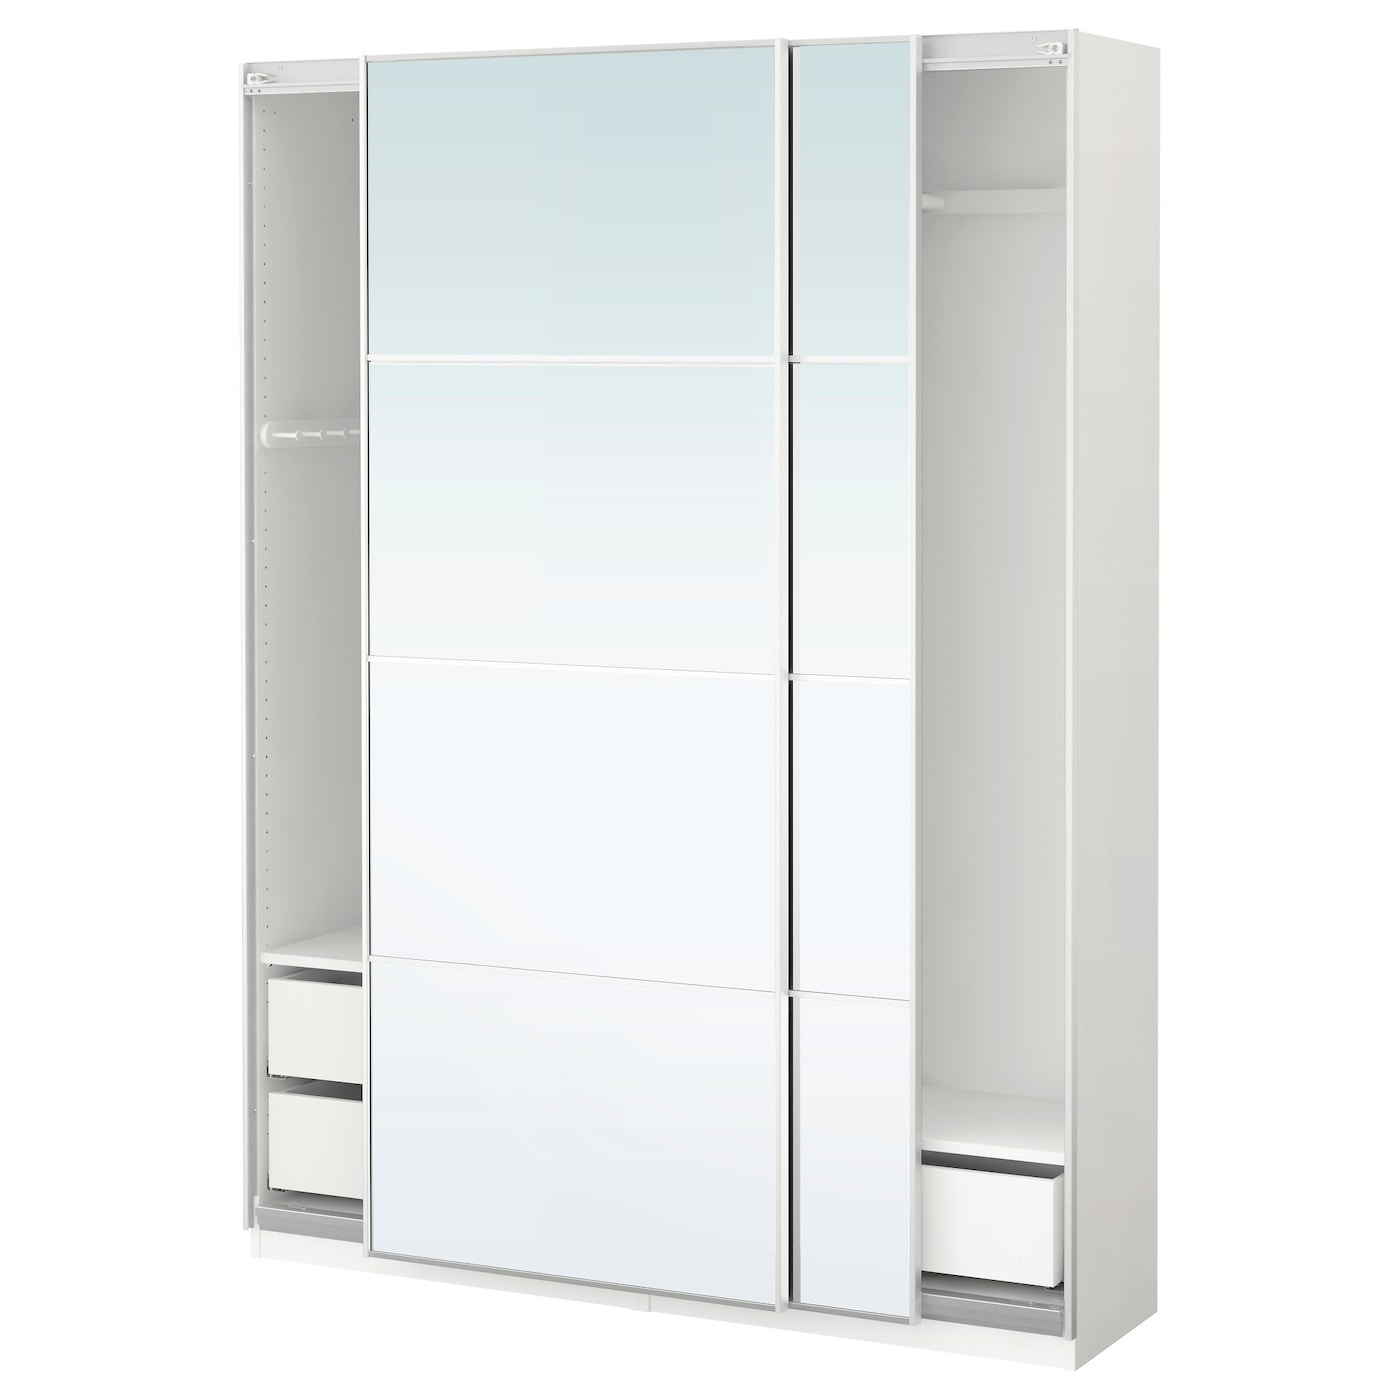 pax wardrobe white auli mirror glass 150x44x201 cm ikea